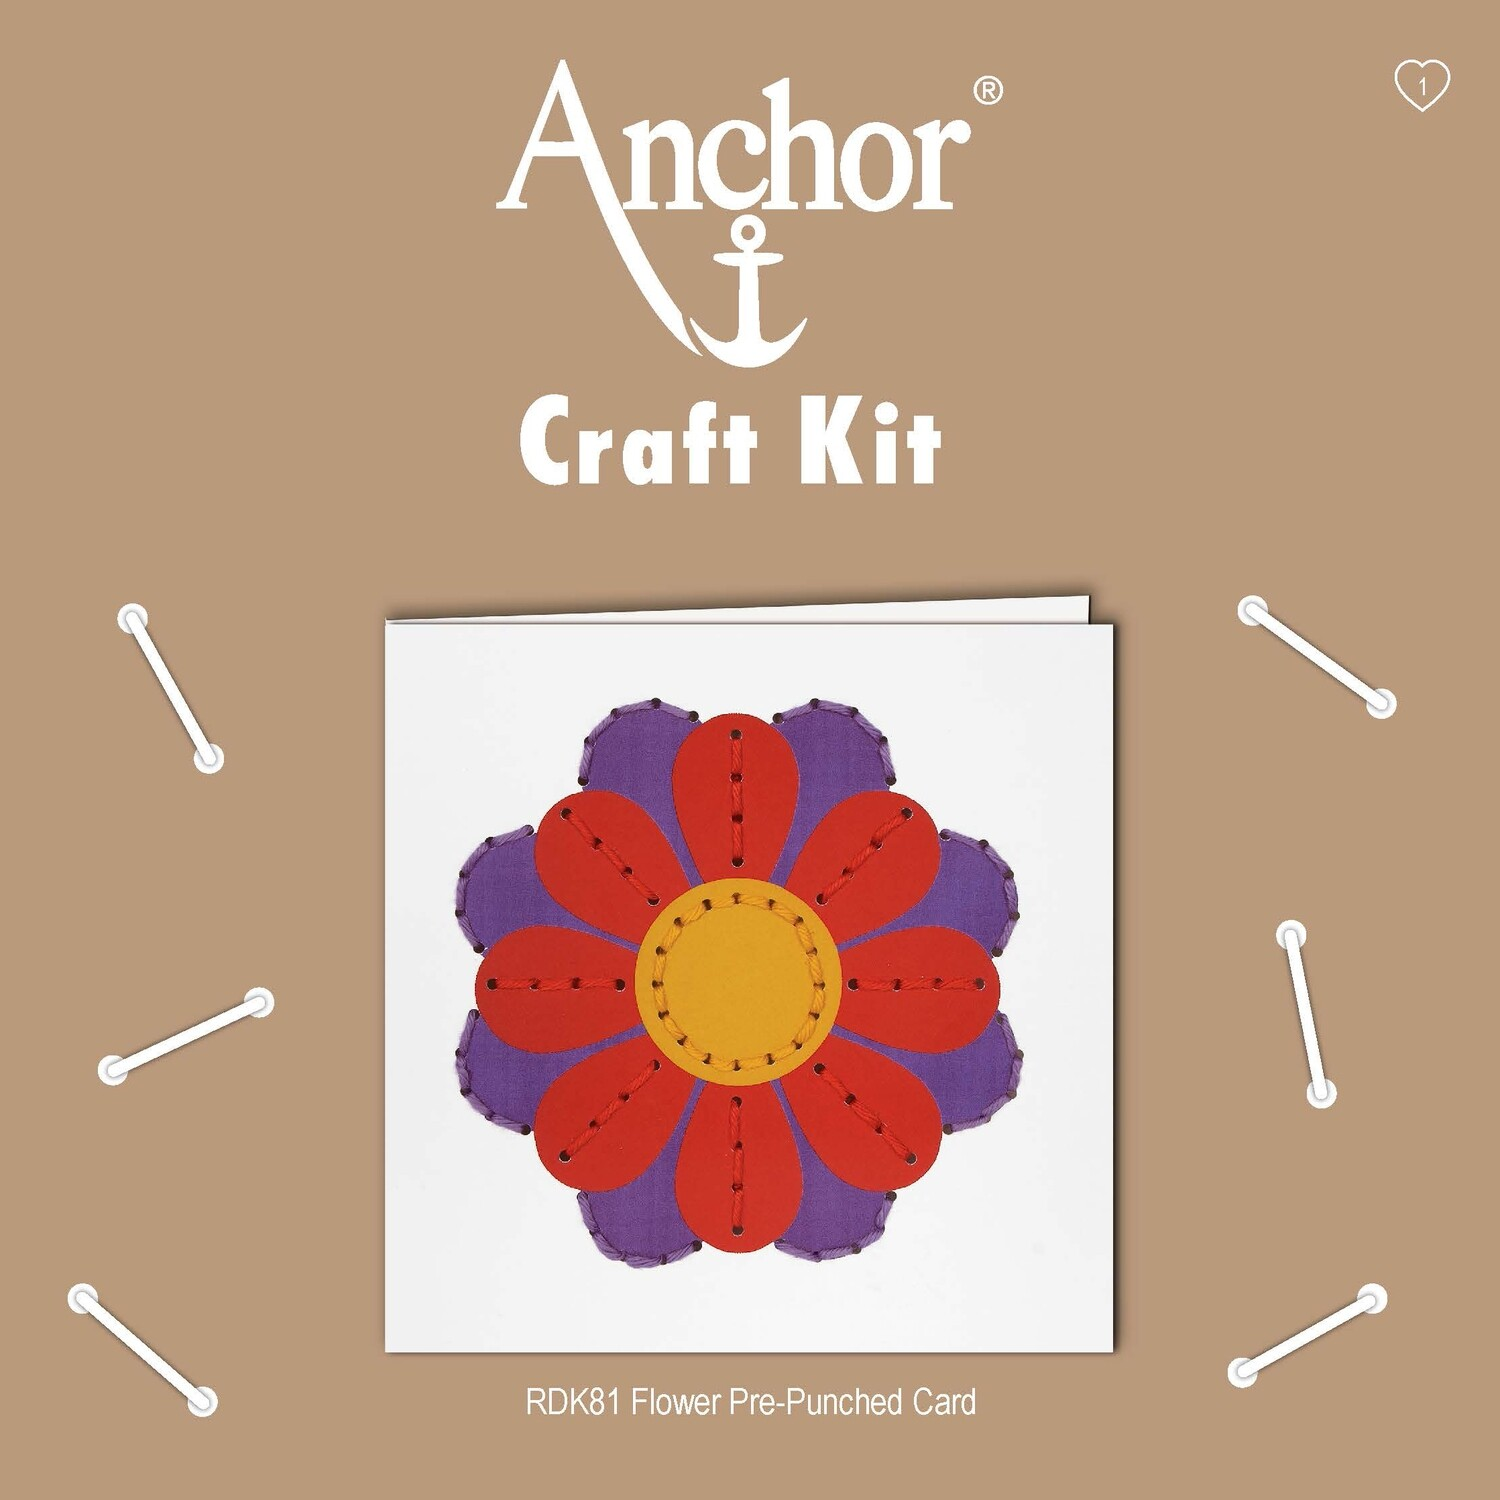 Anchor Craft Kit - Punch Card Flower